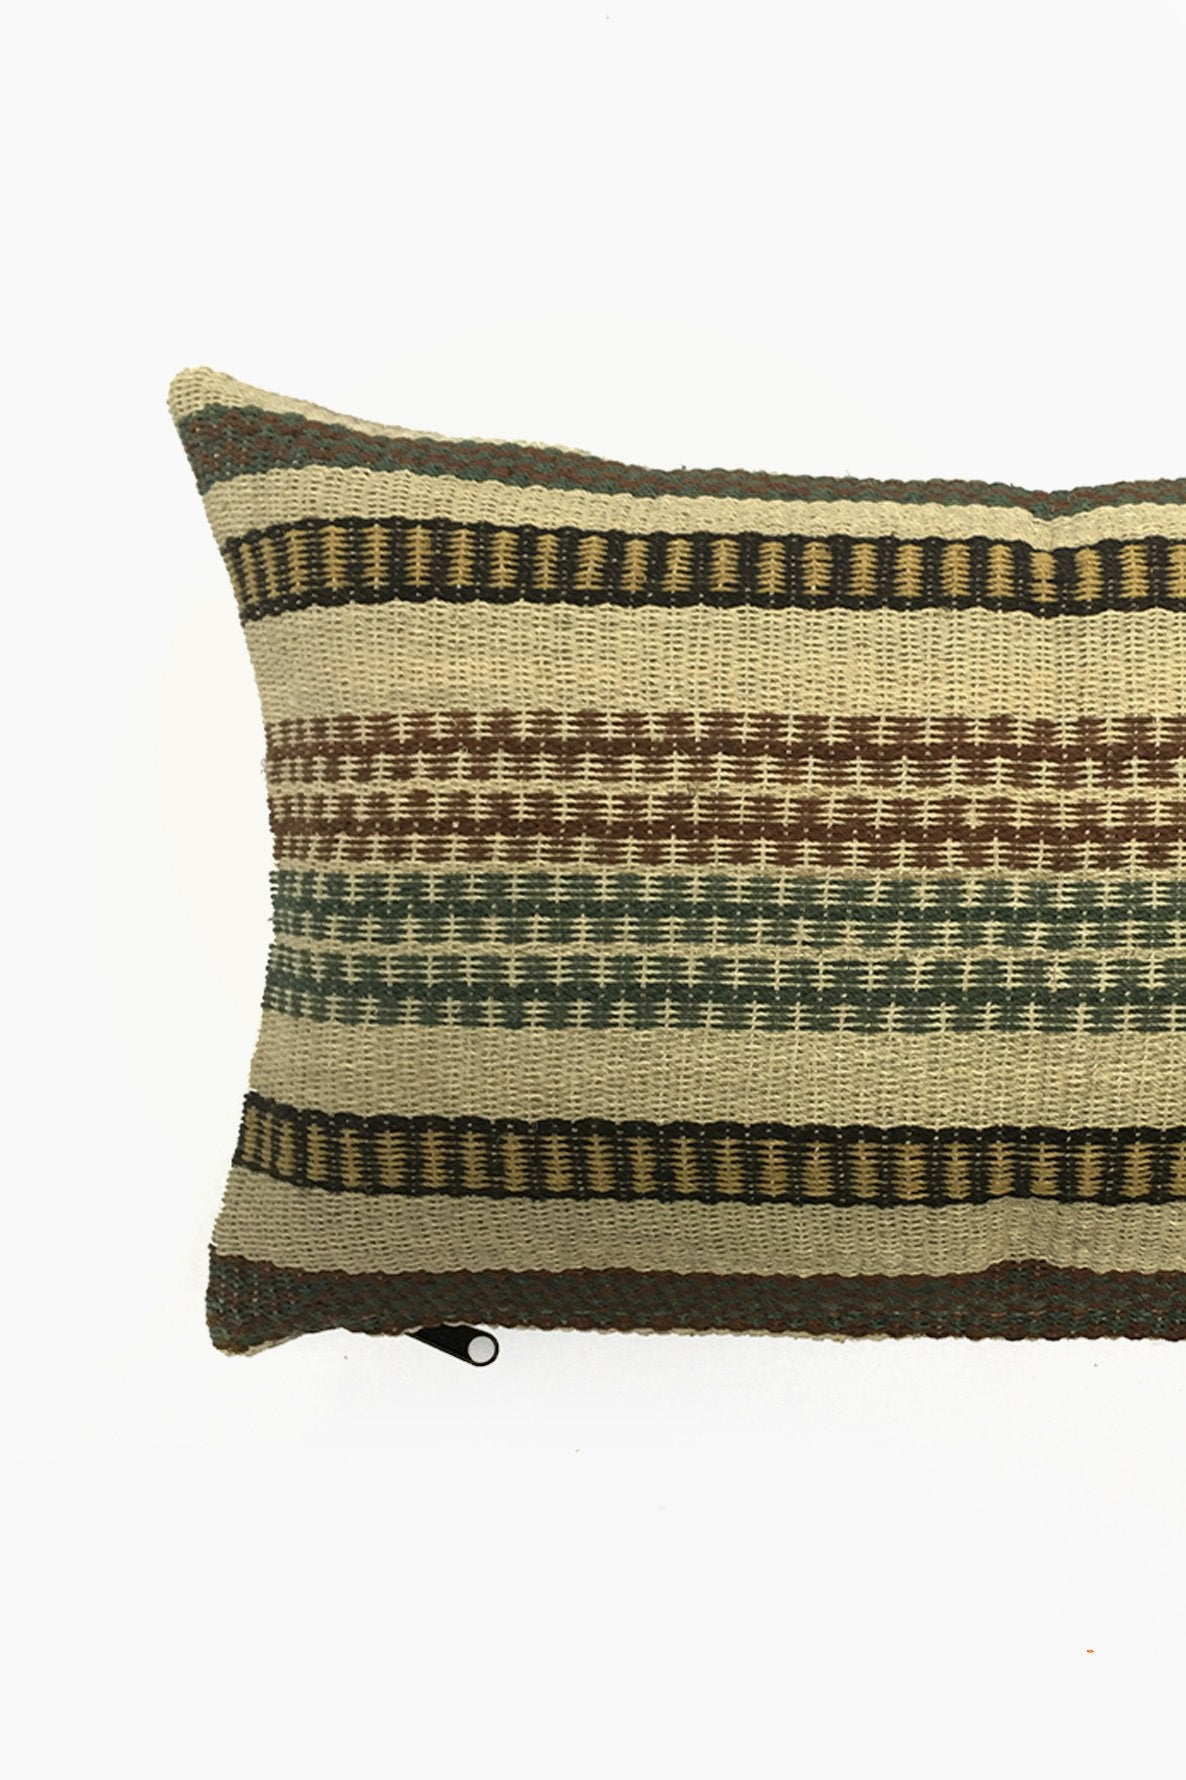 Close up of Cream Chaguar Loom Cushion with Multicolored Design Details.